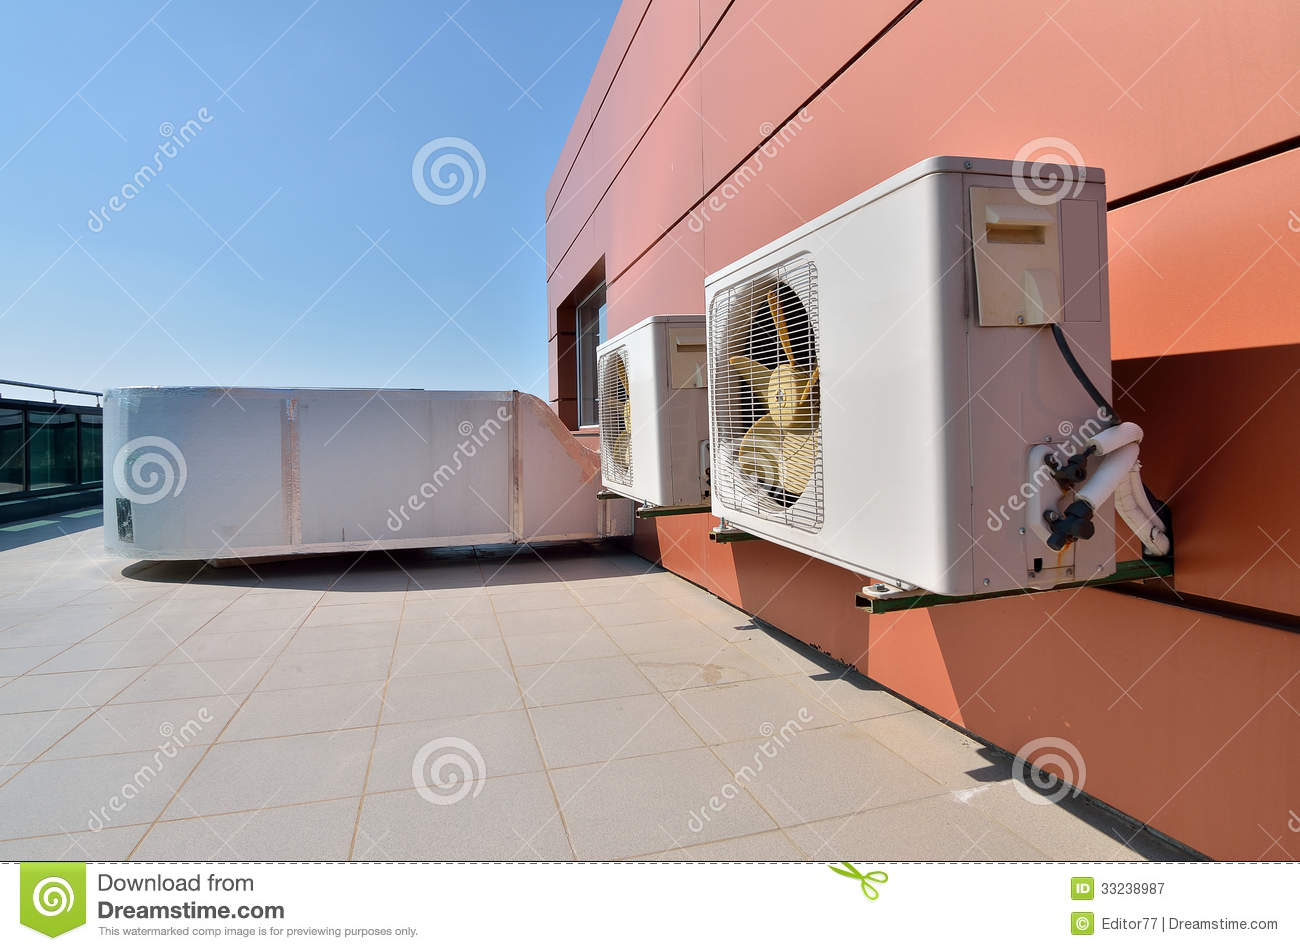 Big Vent Fans : Air conditioning devices with big fans stock image